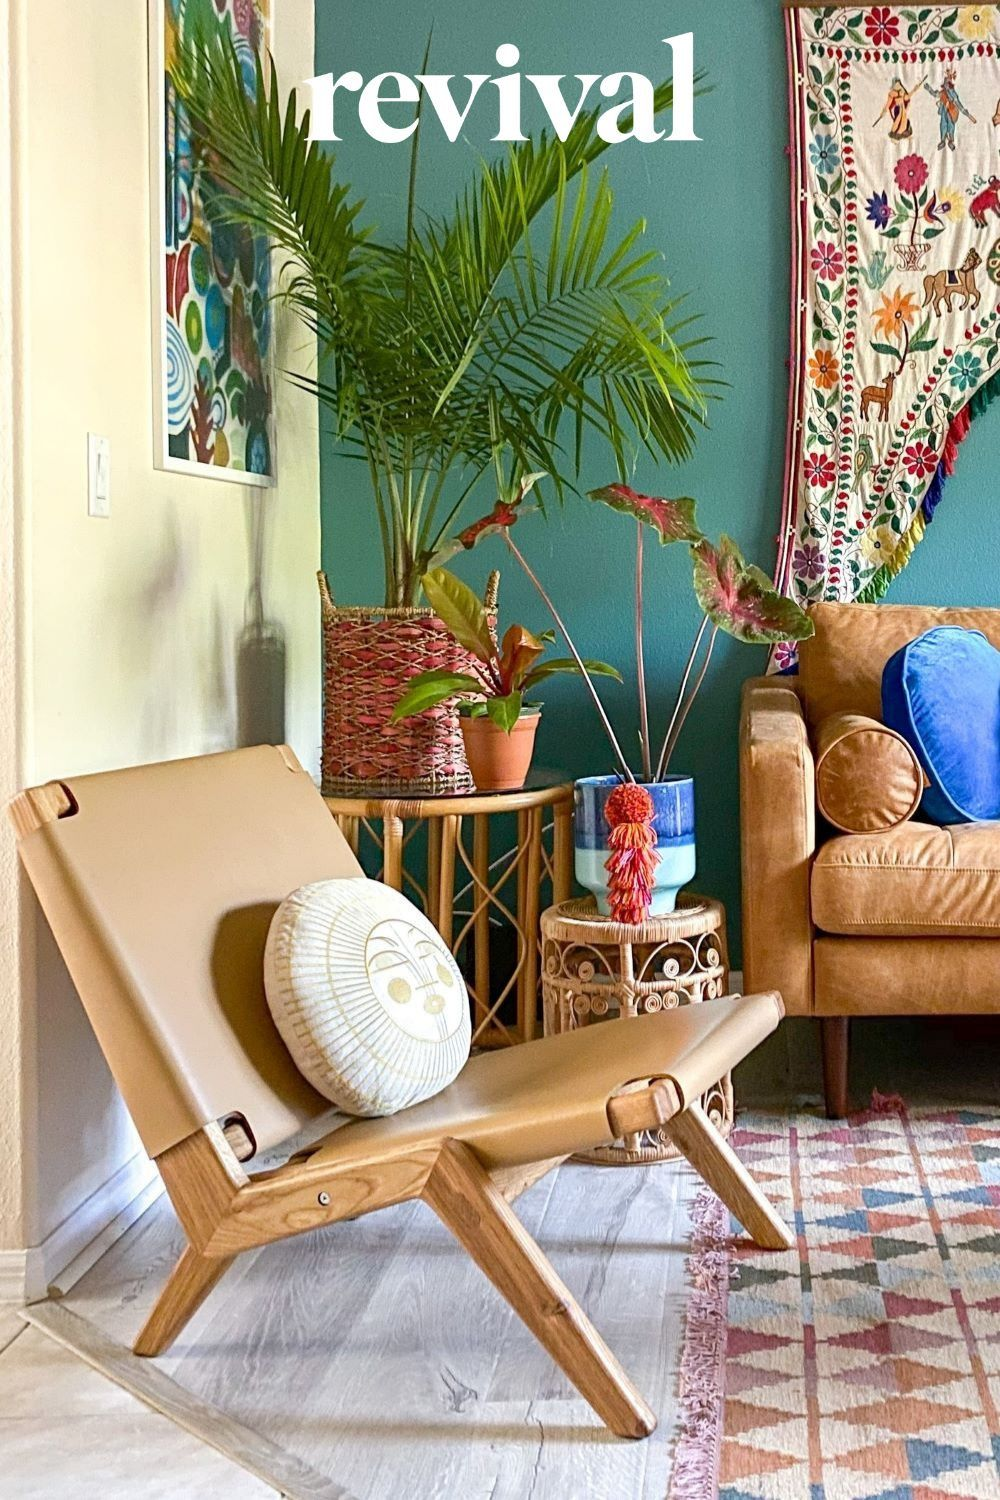 Living room decor ideas with a foldable leather chair, only at Revival Rugs! Photo by @mango_manor #interiorstyling #interiorinspo #designinspo #interiorstyle #interiordetails #revivalrugs #interiorideas #interiorstyling #interiorinspo #lovefordesigns #homedecor #homedesign #homeinspo #designideas #lonnyliving #inmyhouzz #houzz #interiordesign #vintagerugs #livingroomdesign #leatherchair #livingroomdecor